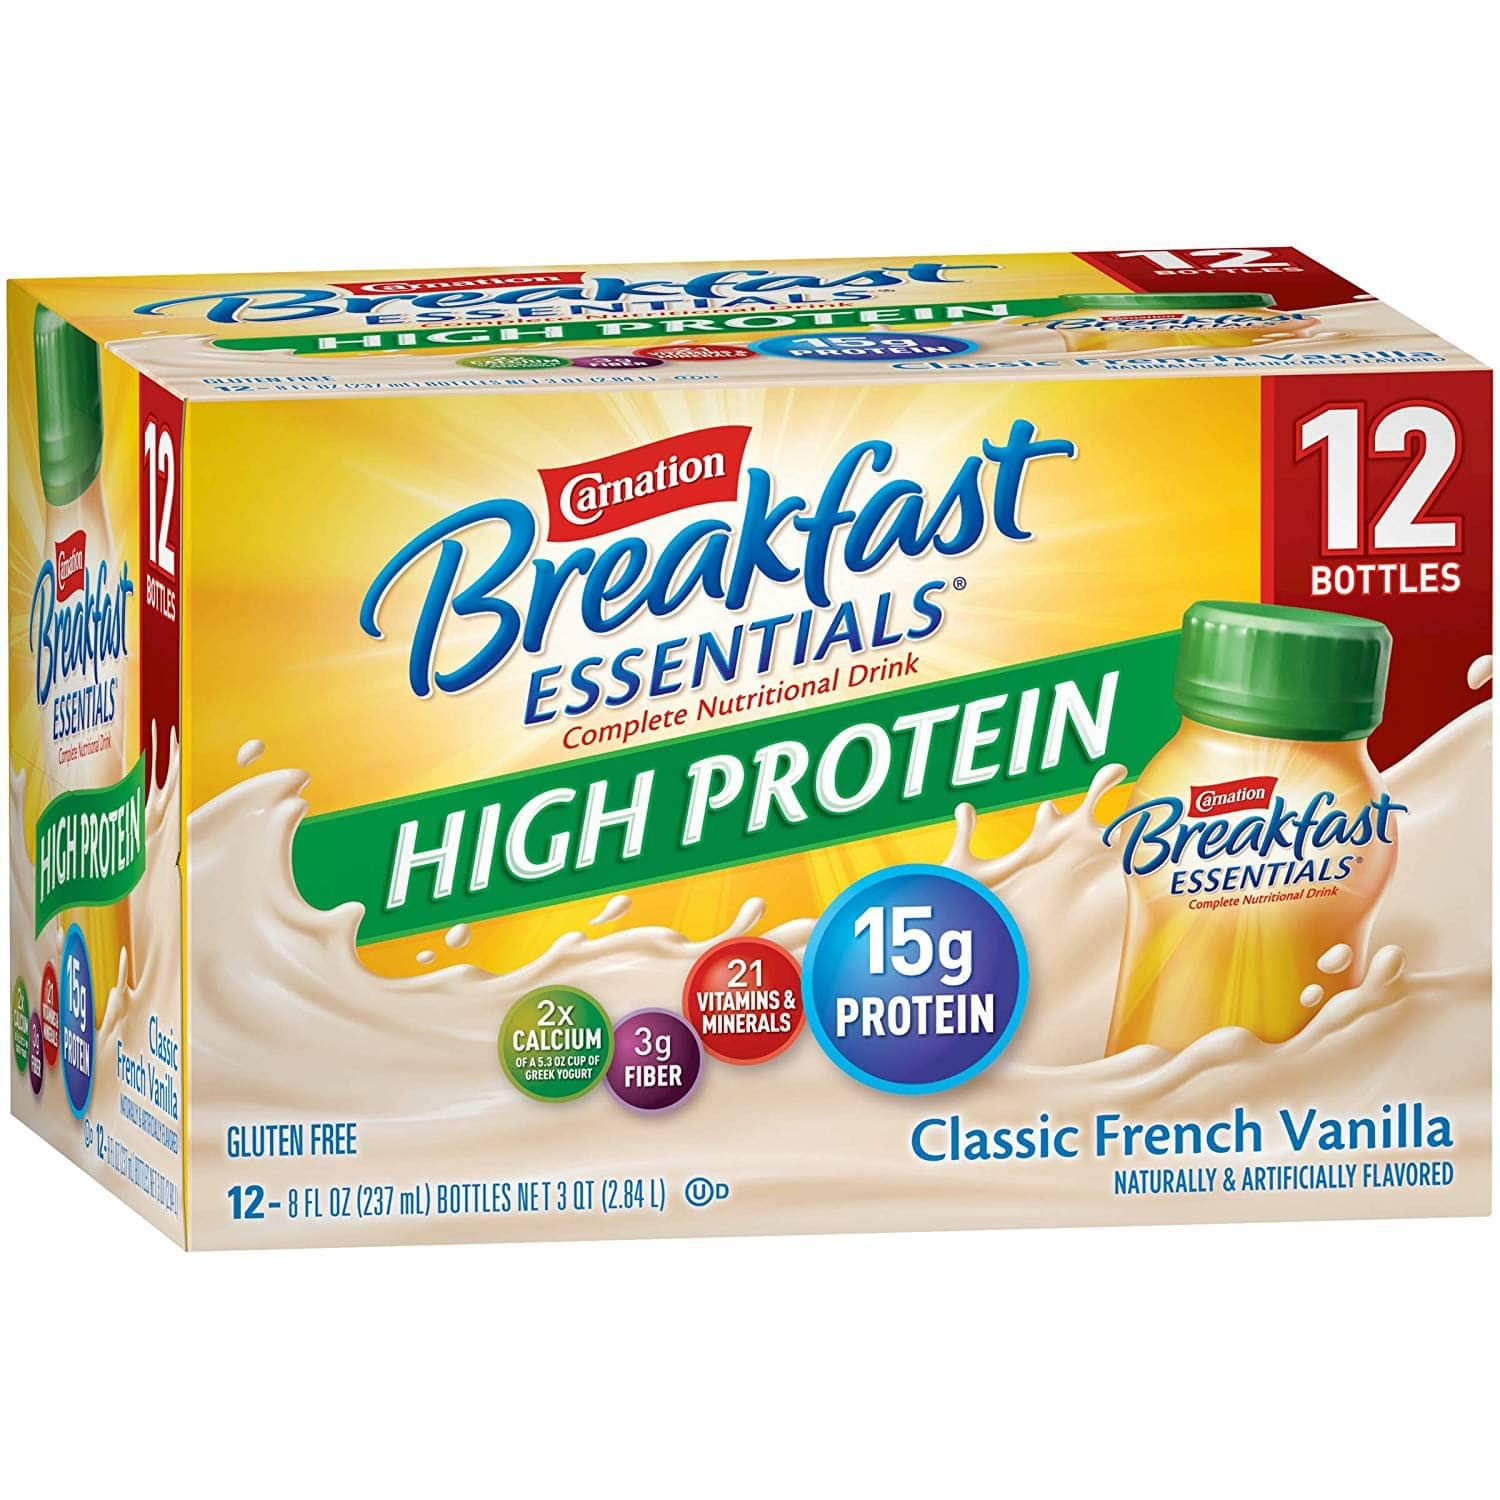 Carnation Breakfast Essentials High Protein Ready-to-Drink, Classic French Vanilla, 8 Ounce Bottle (Pack of 24): $18 or less w/S&S and A/c